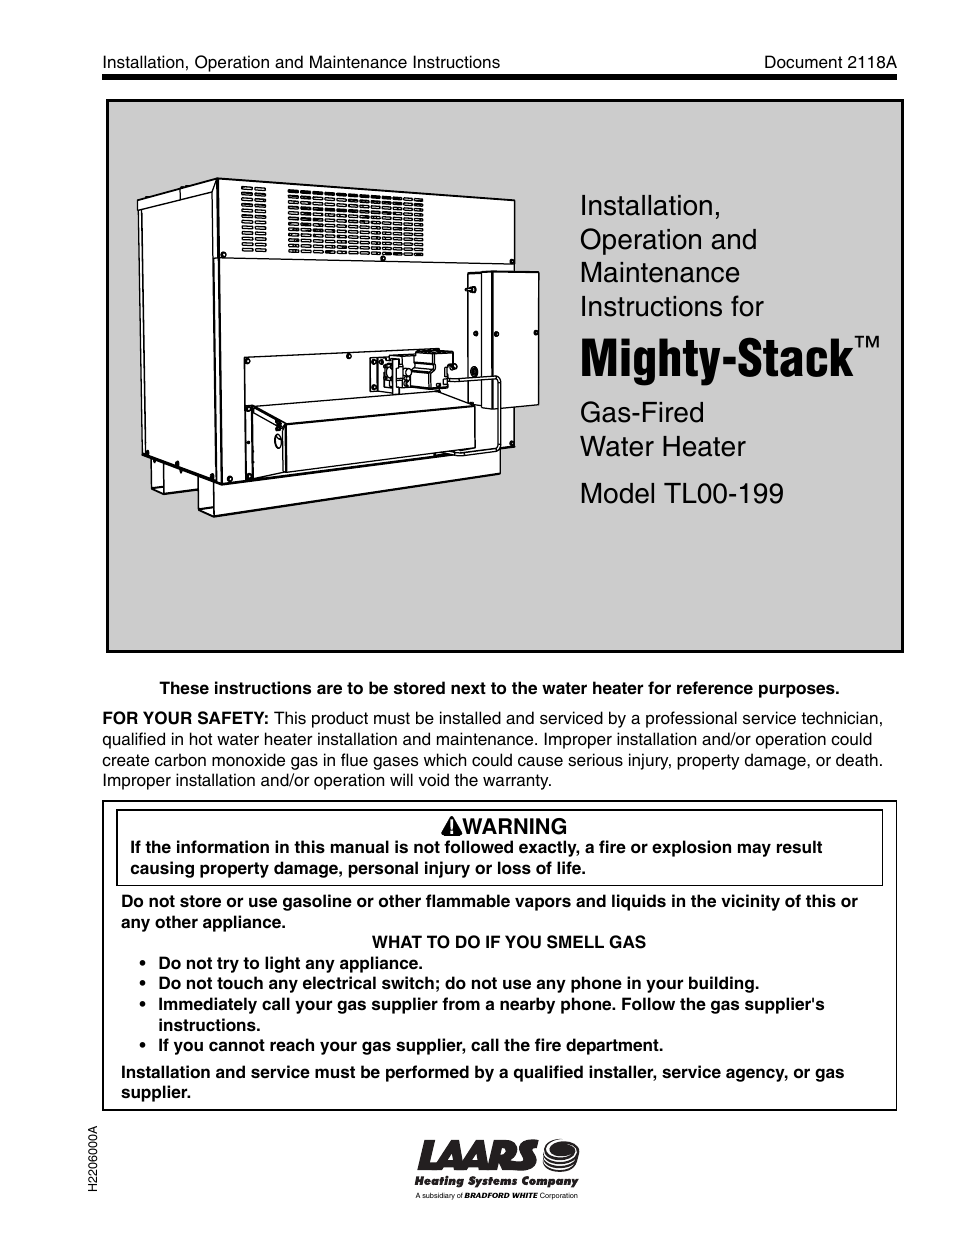 Laars mighty stack tl00 199 installation operation and laars mighty stack tl00 199 installation operation and maintenance instructions user manual 28 pages sciox Gallery